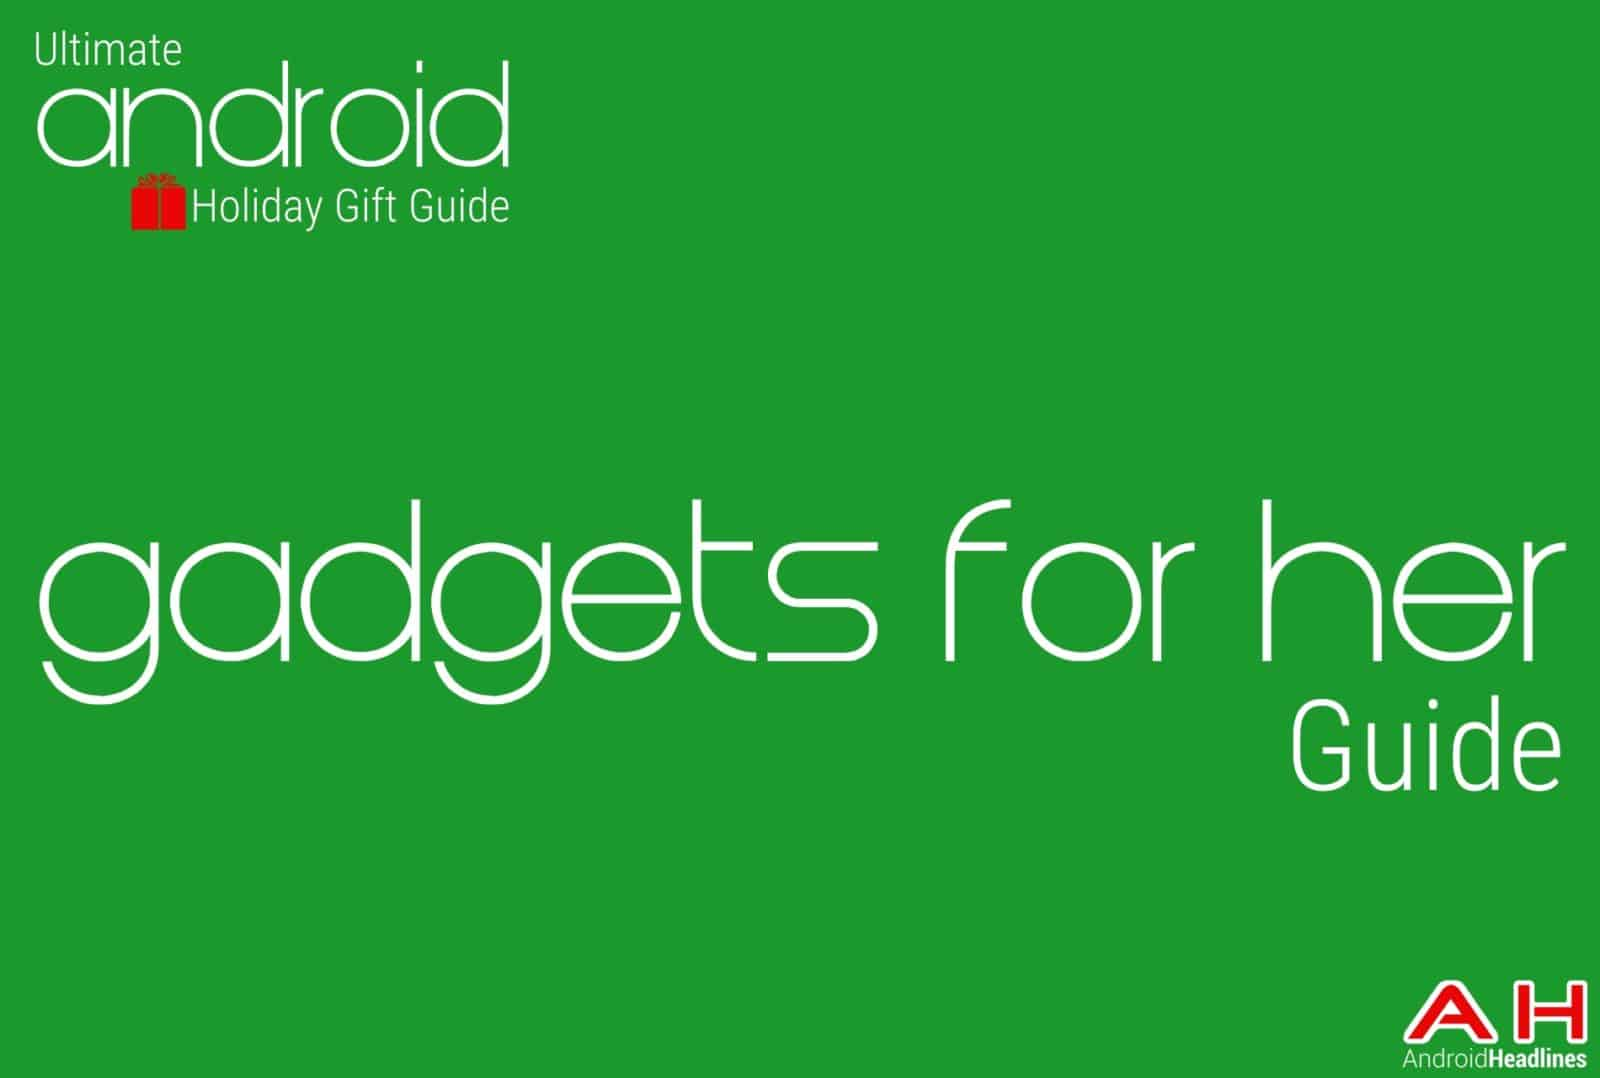 Best Android gadgets for her Guide - Android Holiday Gift Guide Top 10